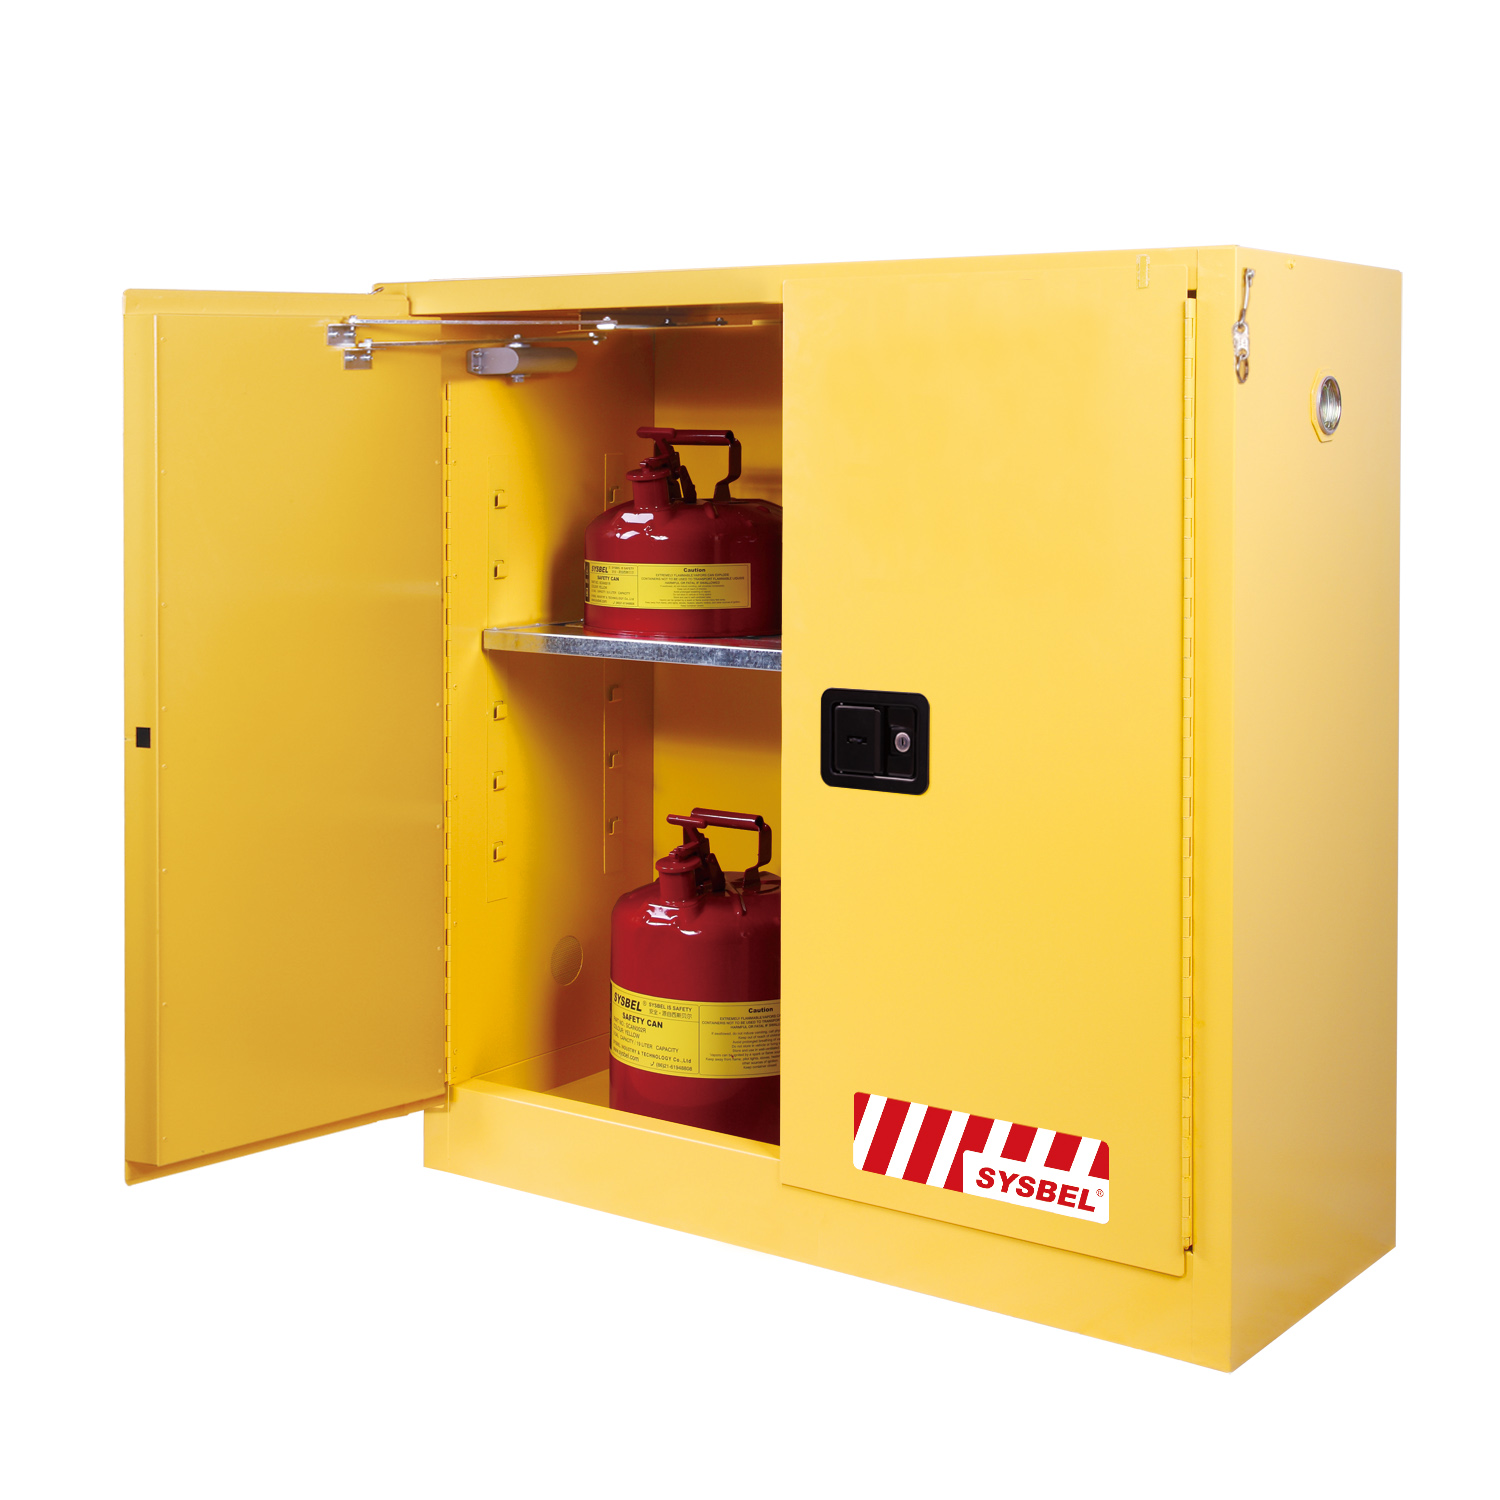 SD30114F U2013 114L SYSBEL Flammable Cabinet (Self Closing)